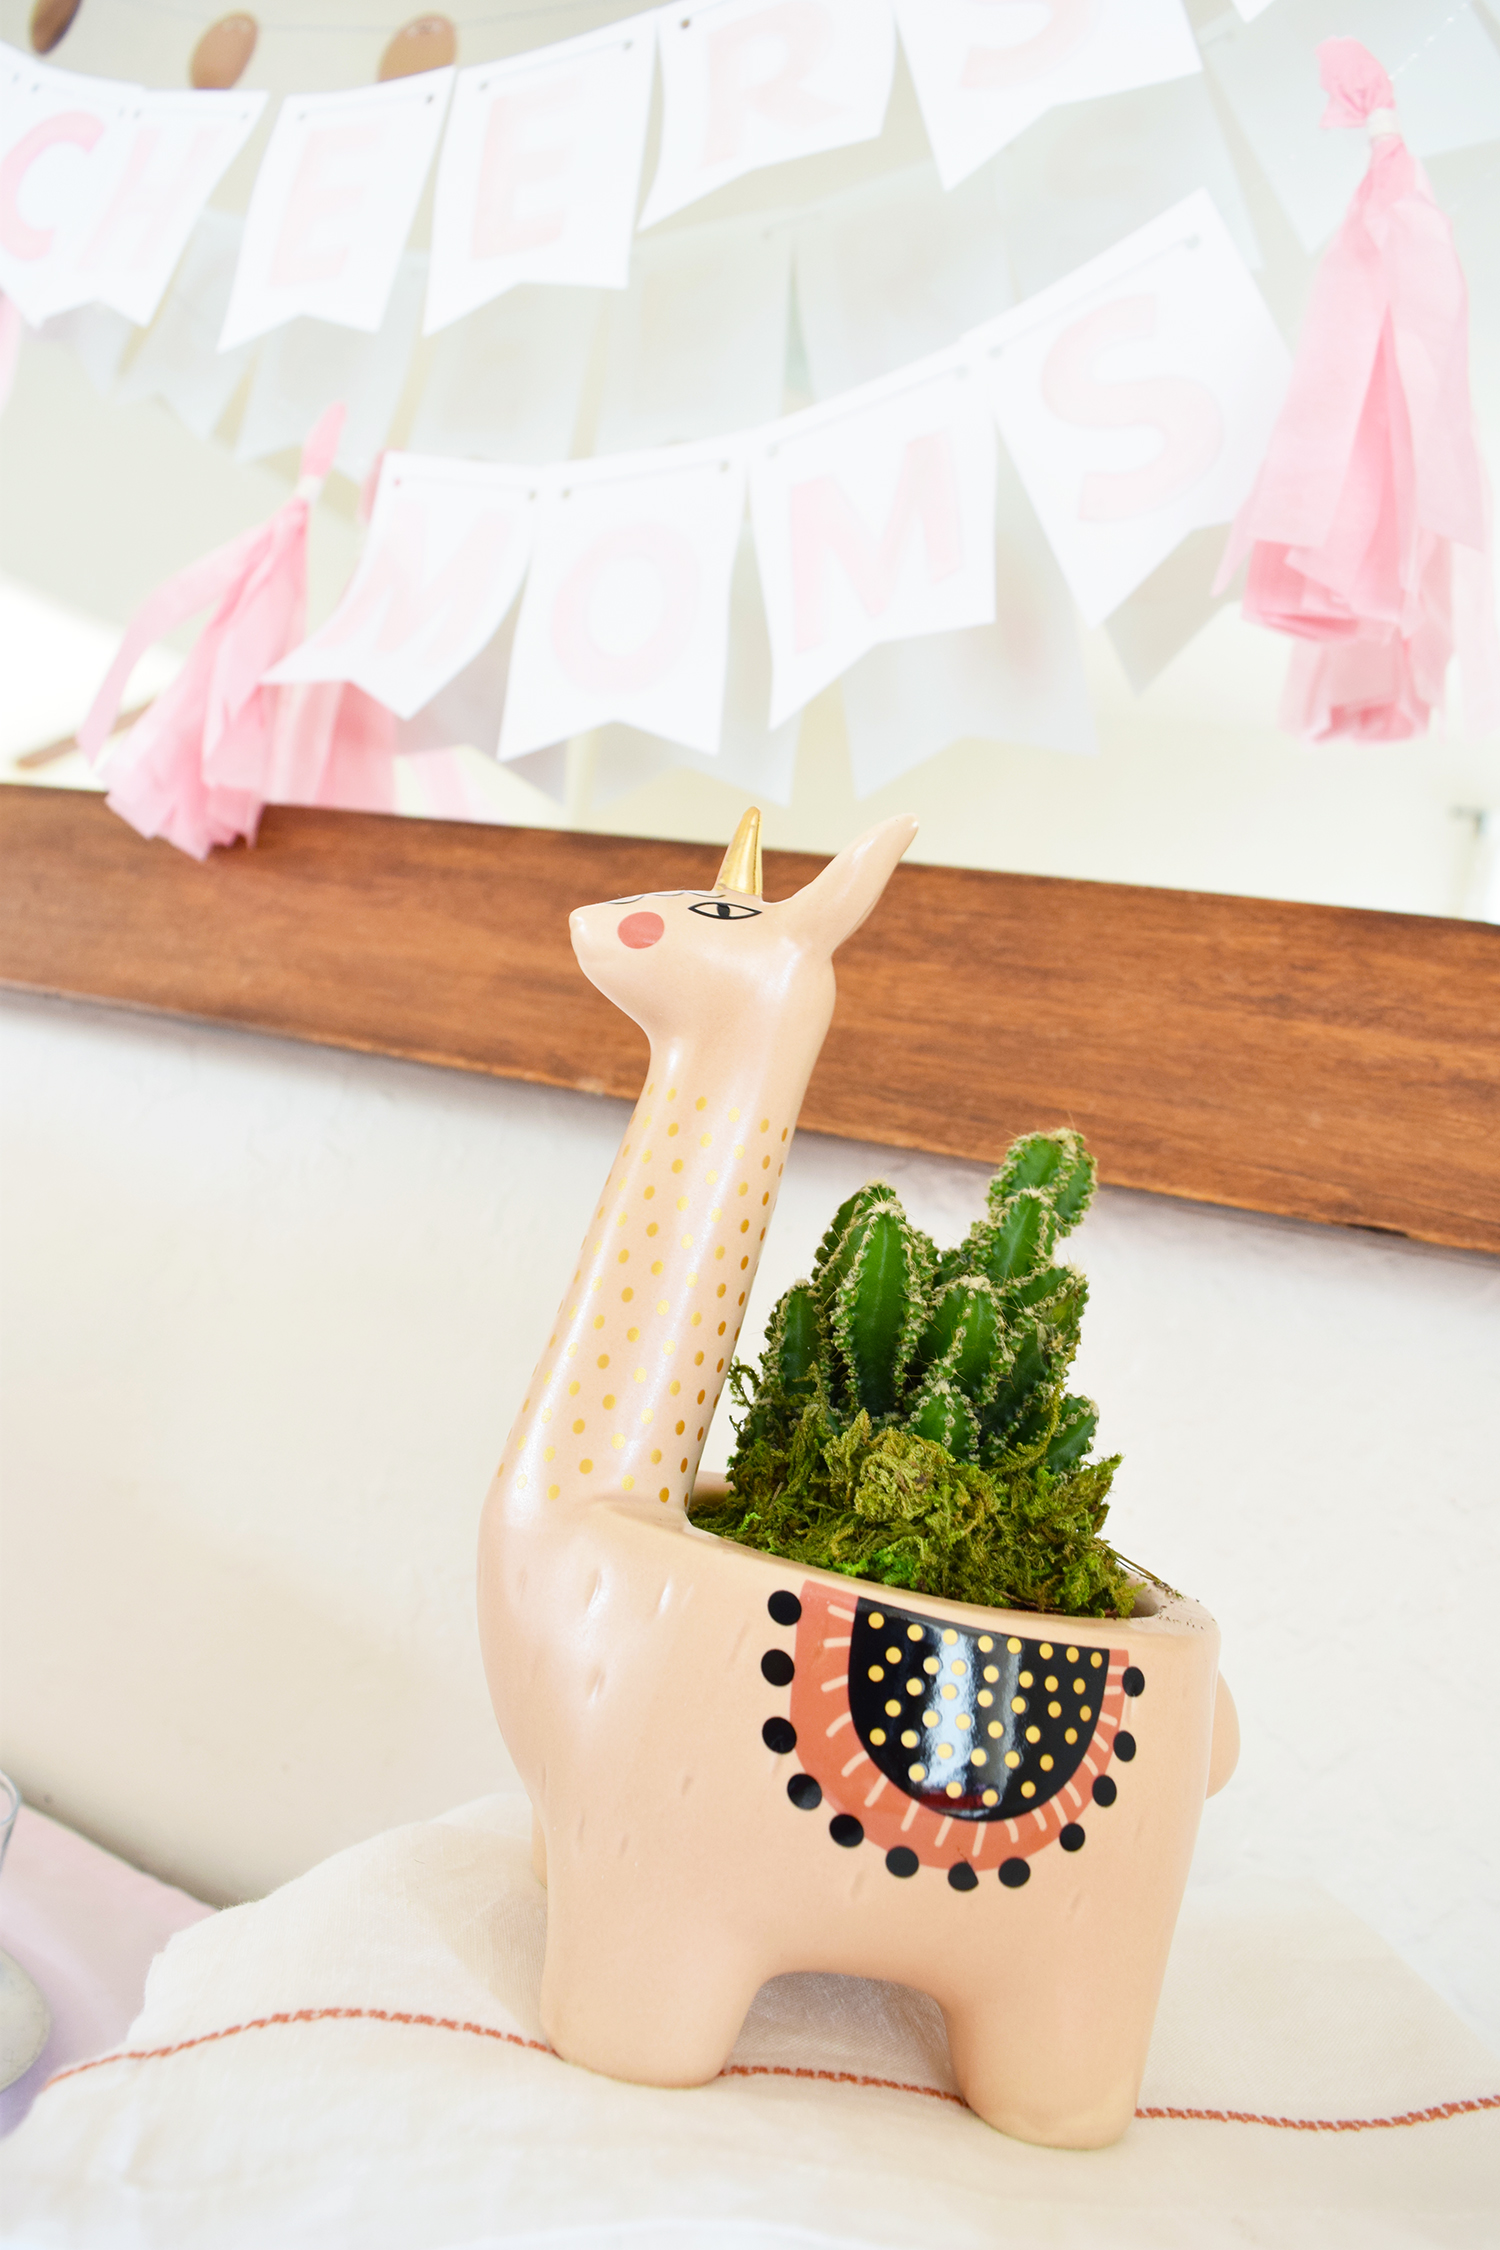 Llamacorn Cactus Plant From ProFlowers. It's adorable!